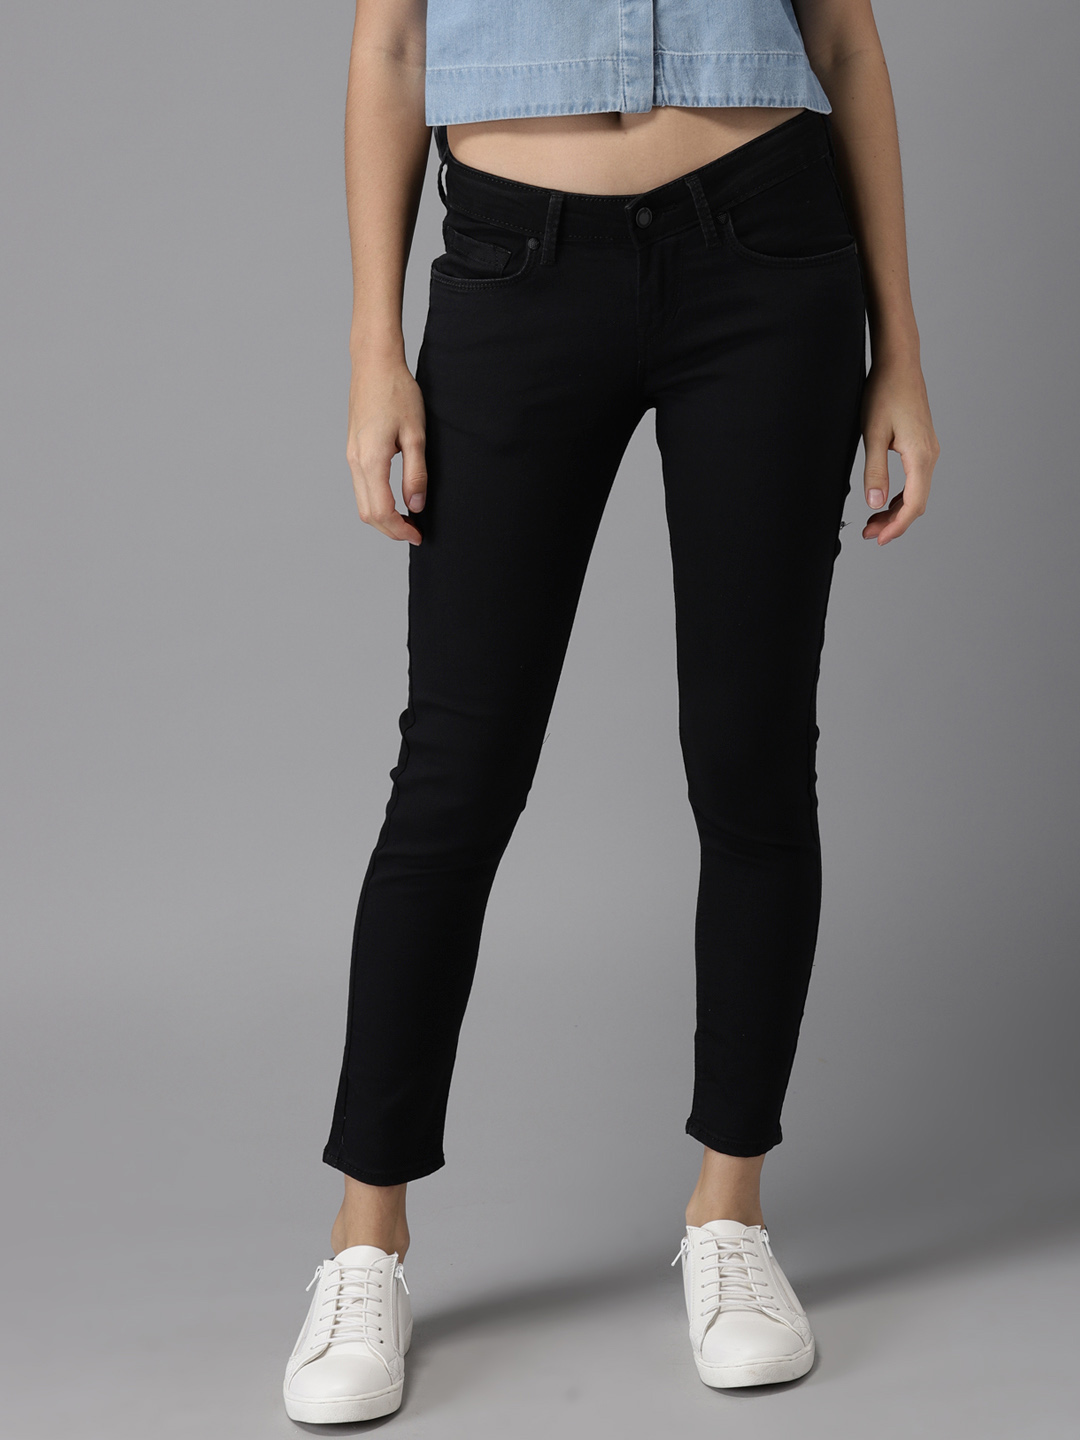 bbc11f55a19 HERE NOW Women Black Skinny Fit Mid-Rise Ankle Length Clean Look  Stretchable Jeans